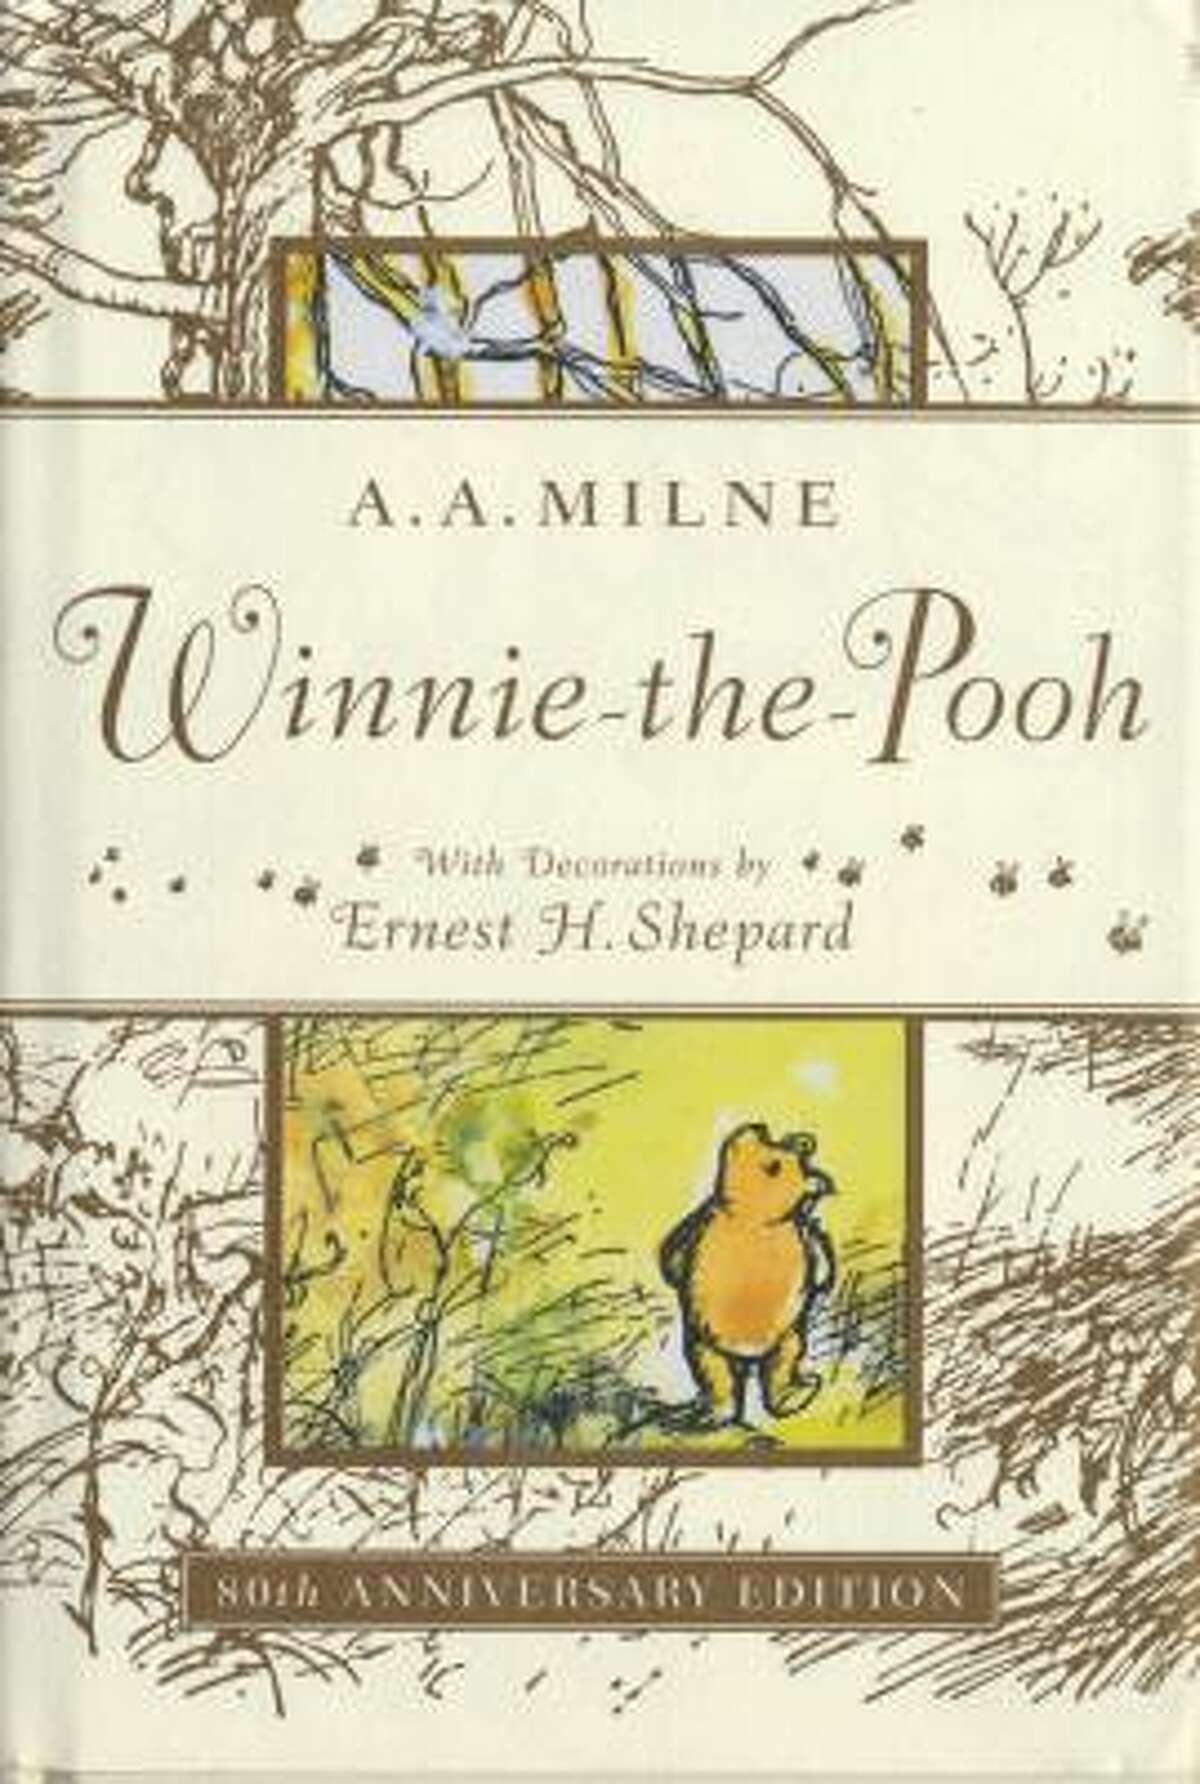 Pooh But his big success came with